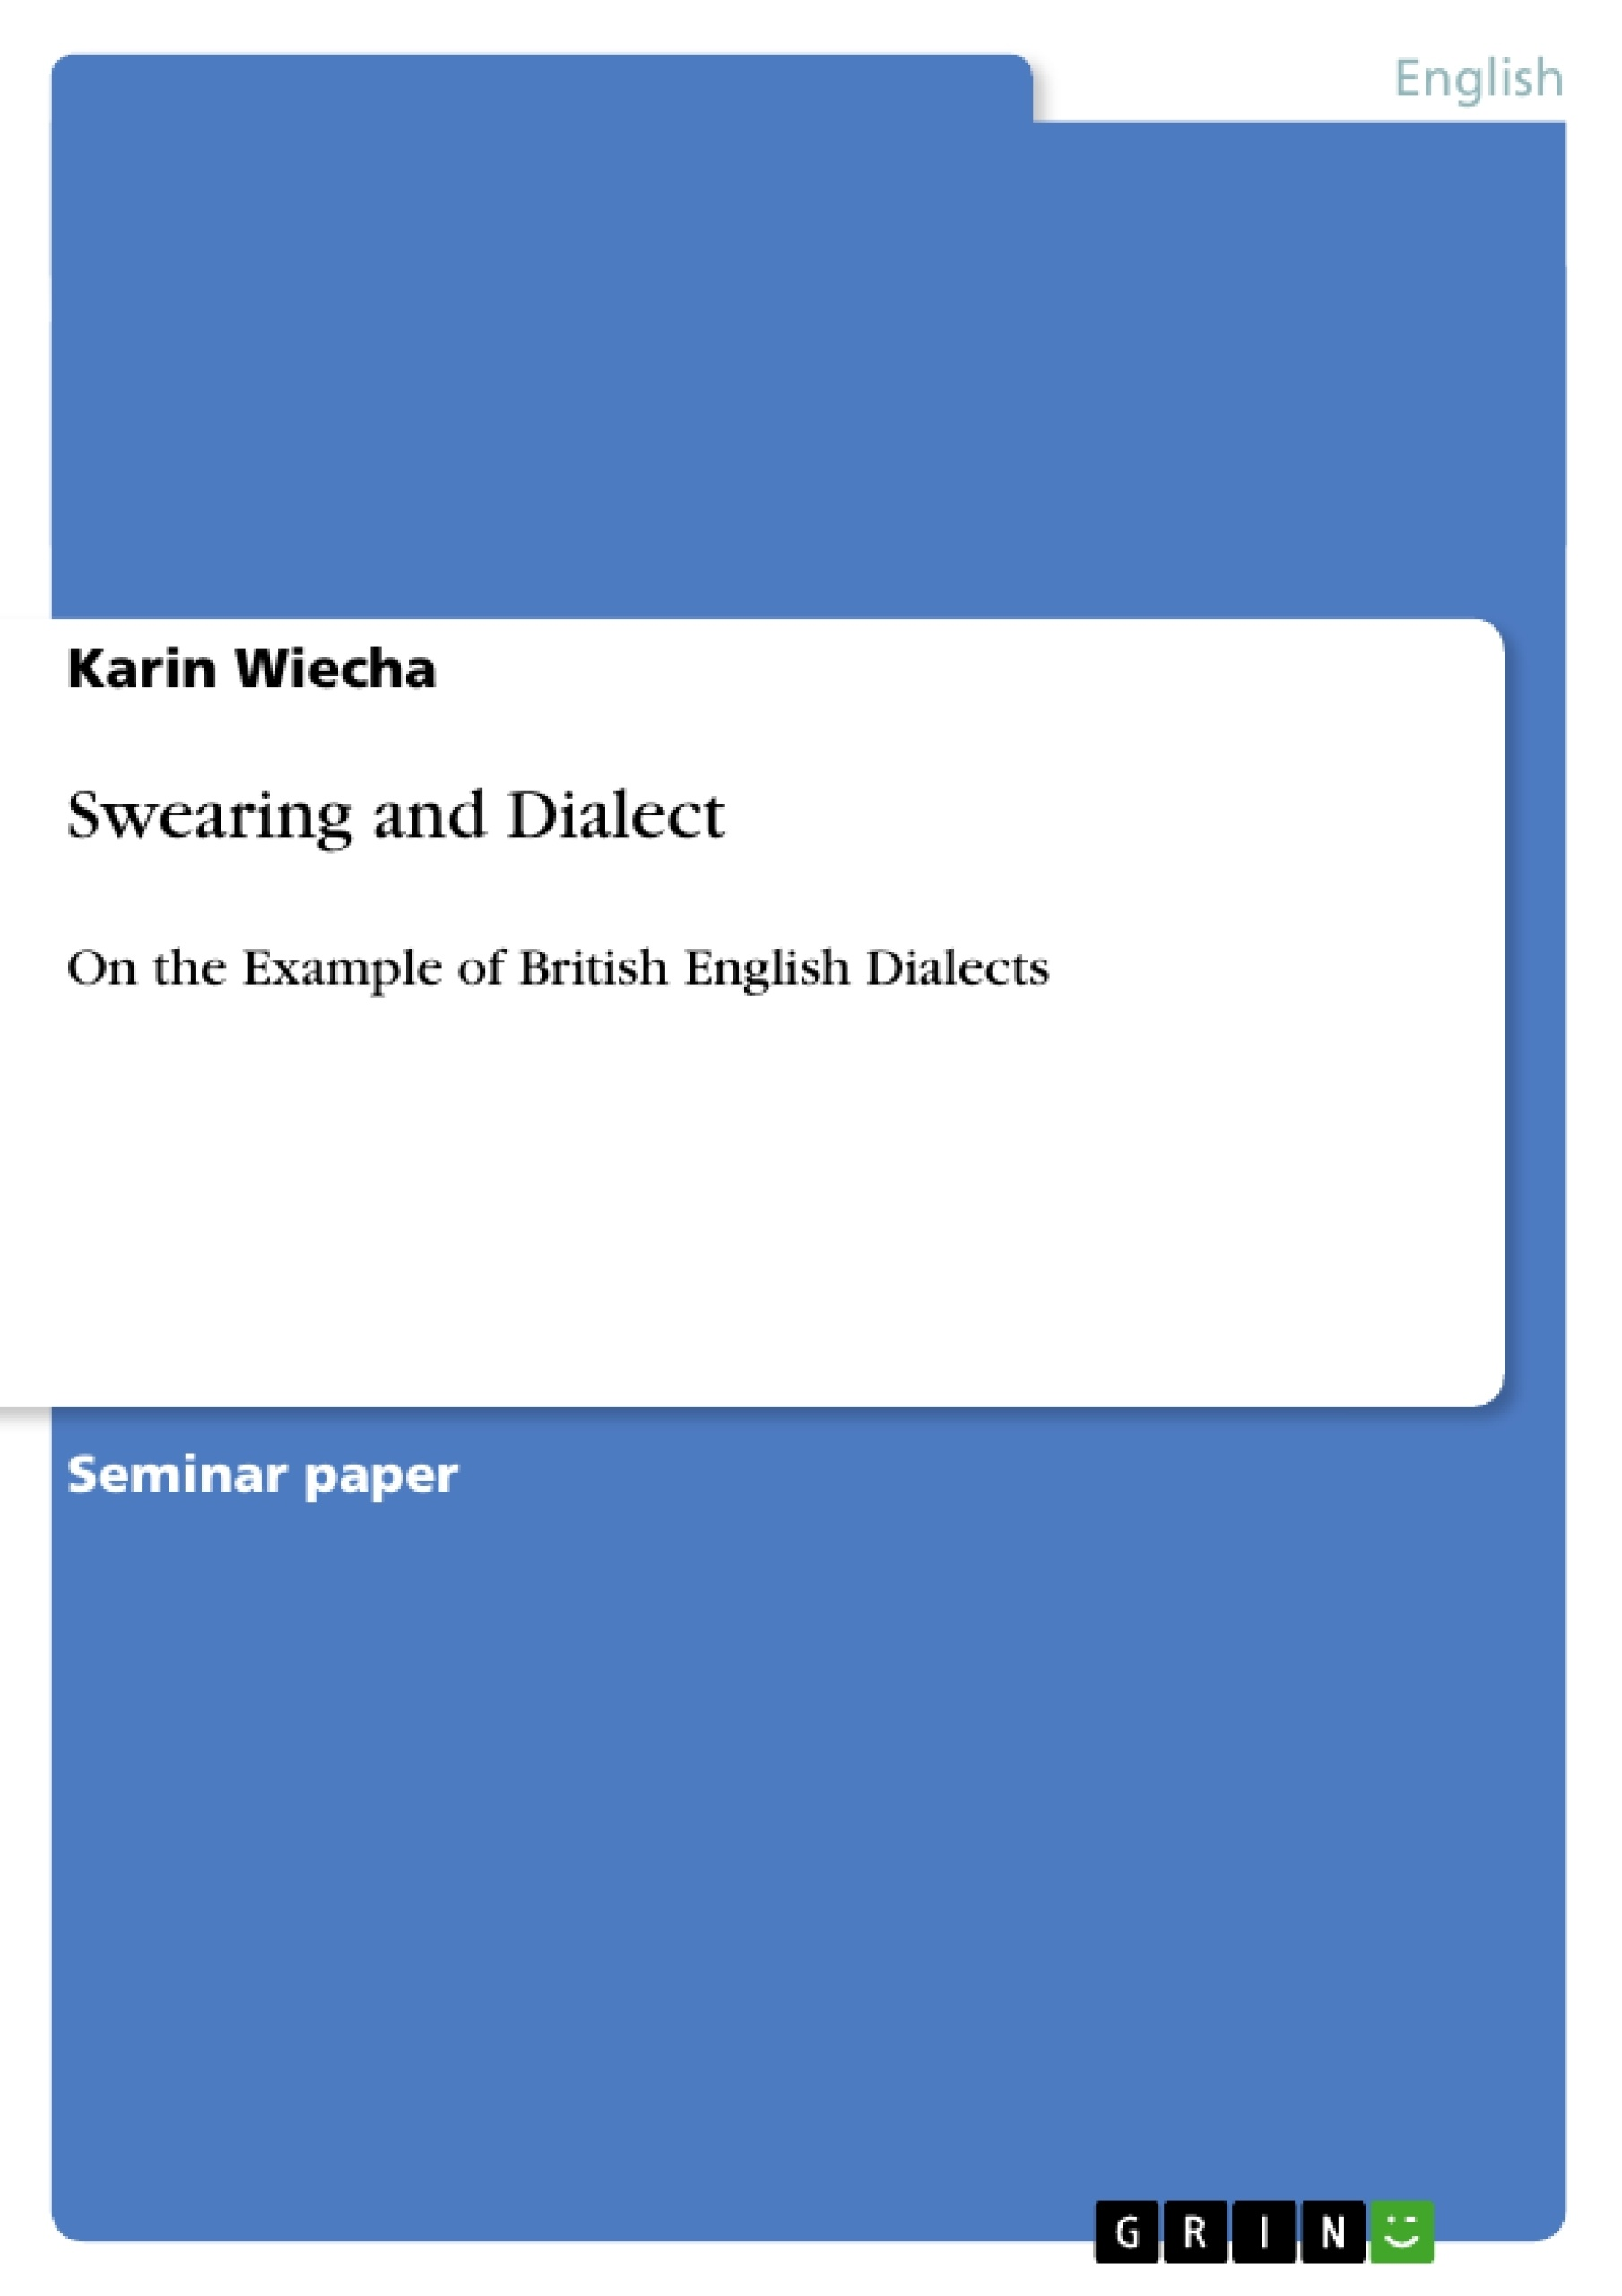 Title: Swearing and Dialect